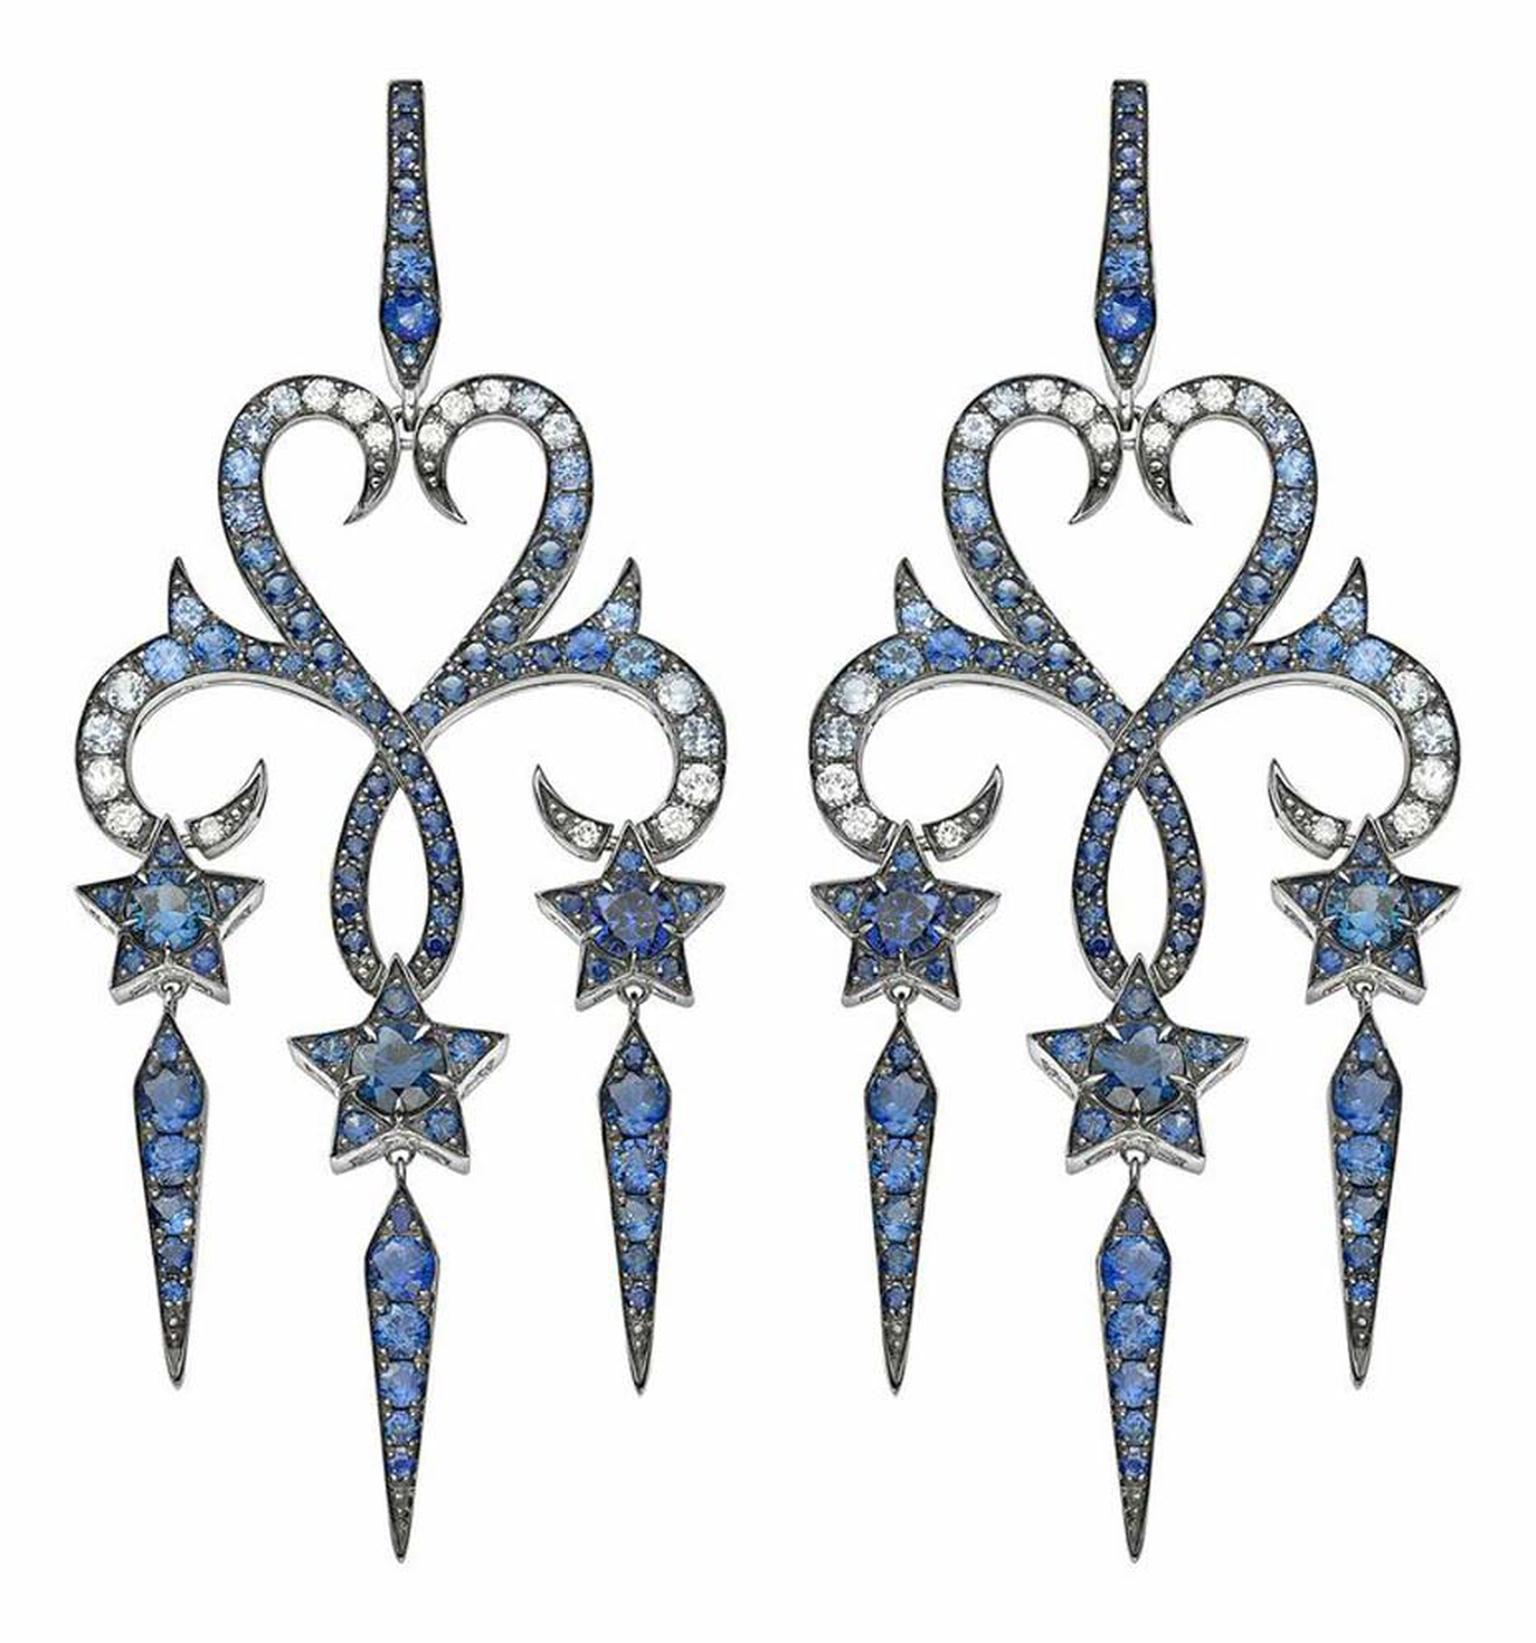 Stephen Webster Belle Epoque high jewellery earrings featuring blue sapphires.